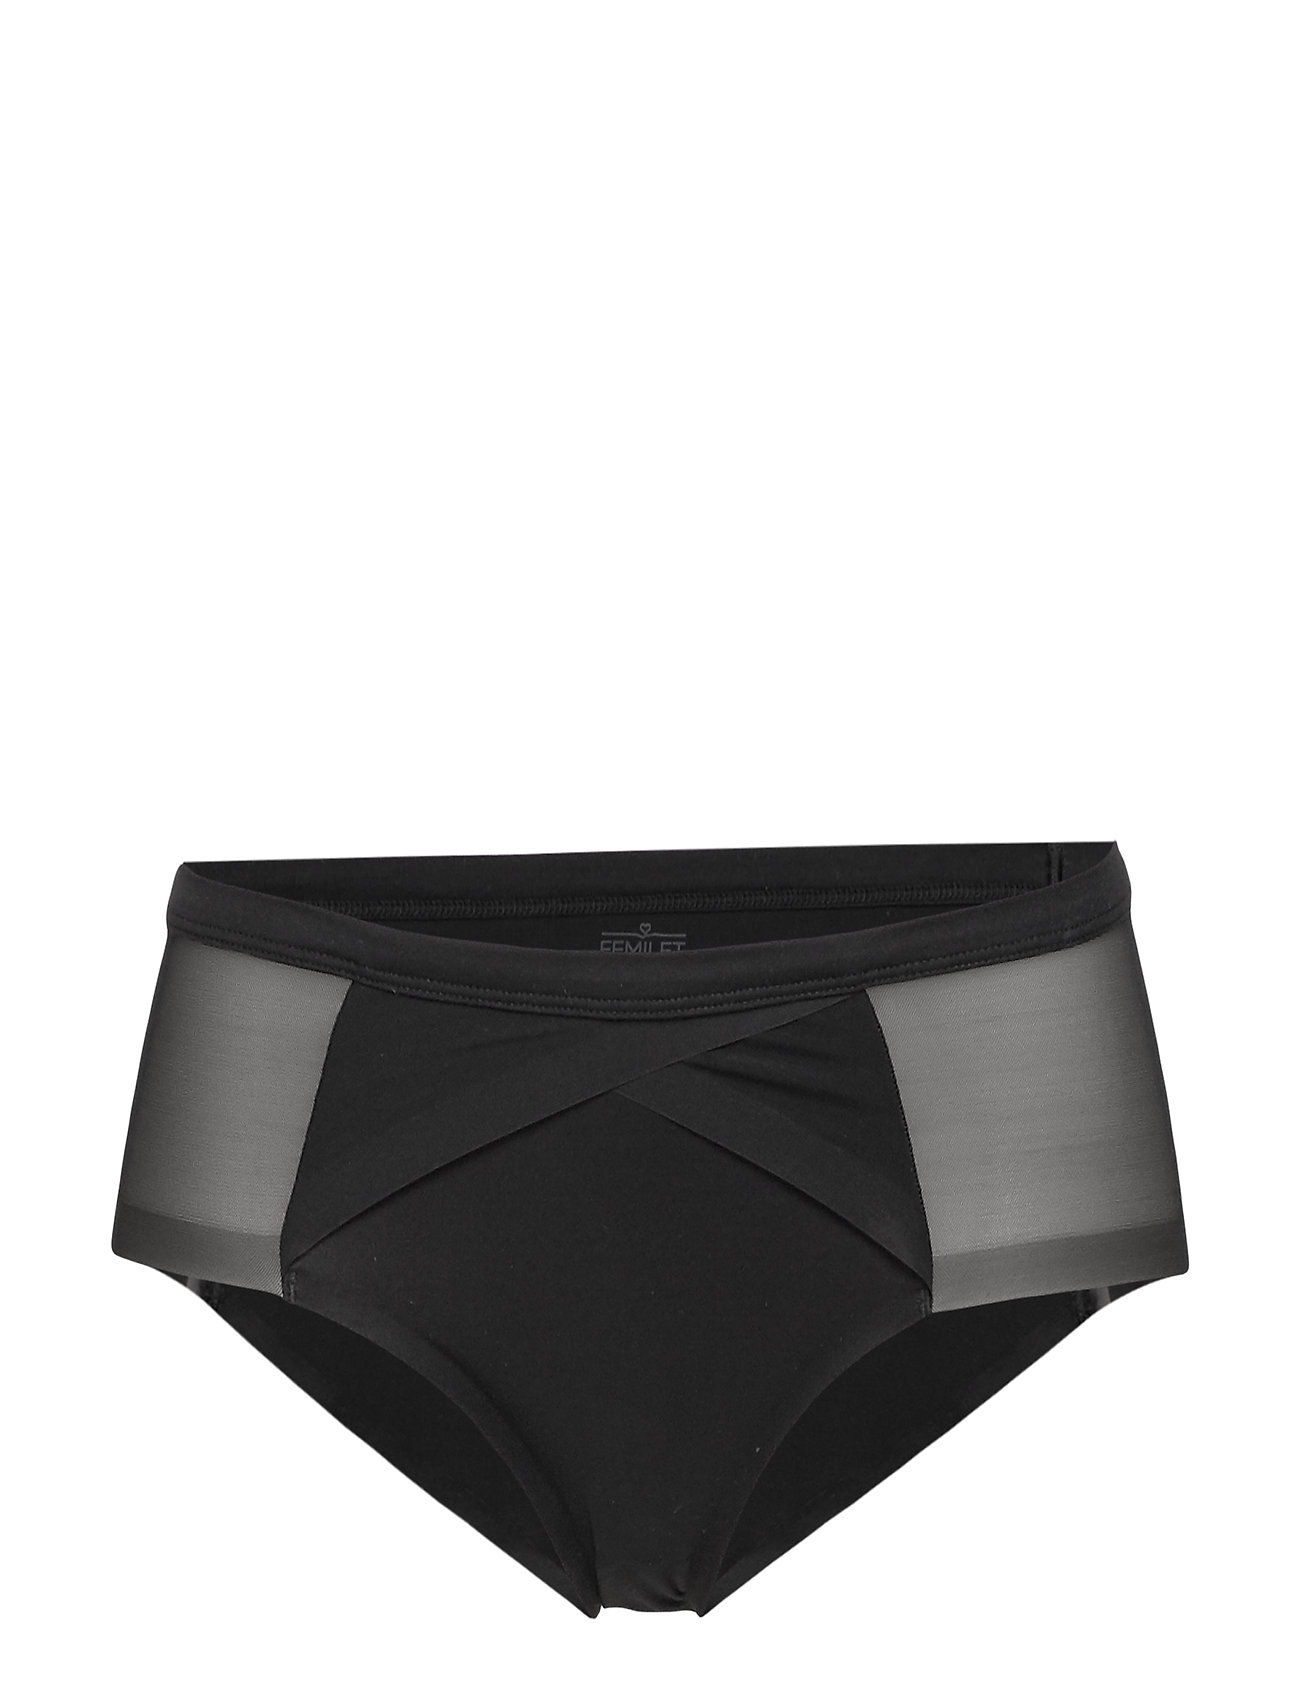 Image of Filippa - Hipster Trusser, Tanga Briefs Sort Femilet (3011858169)